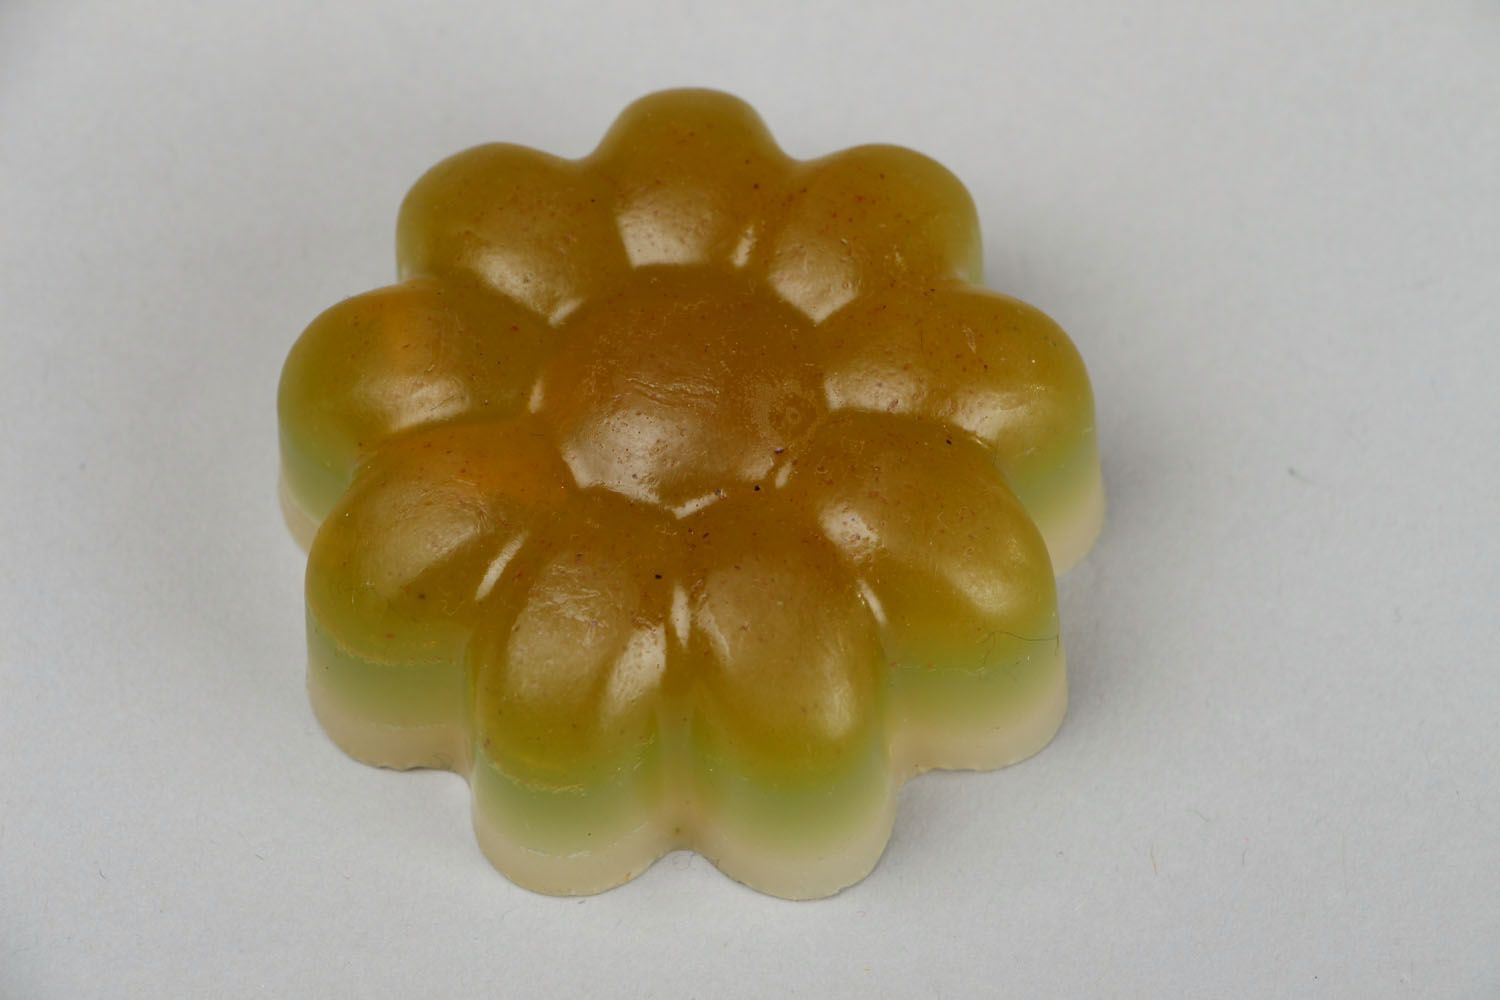 Homemade soap for all skin types Camomile photo 3